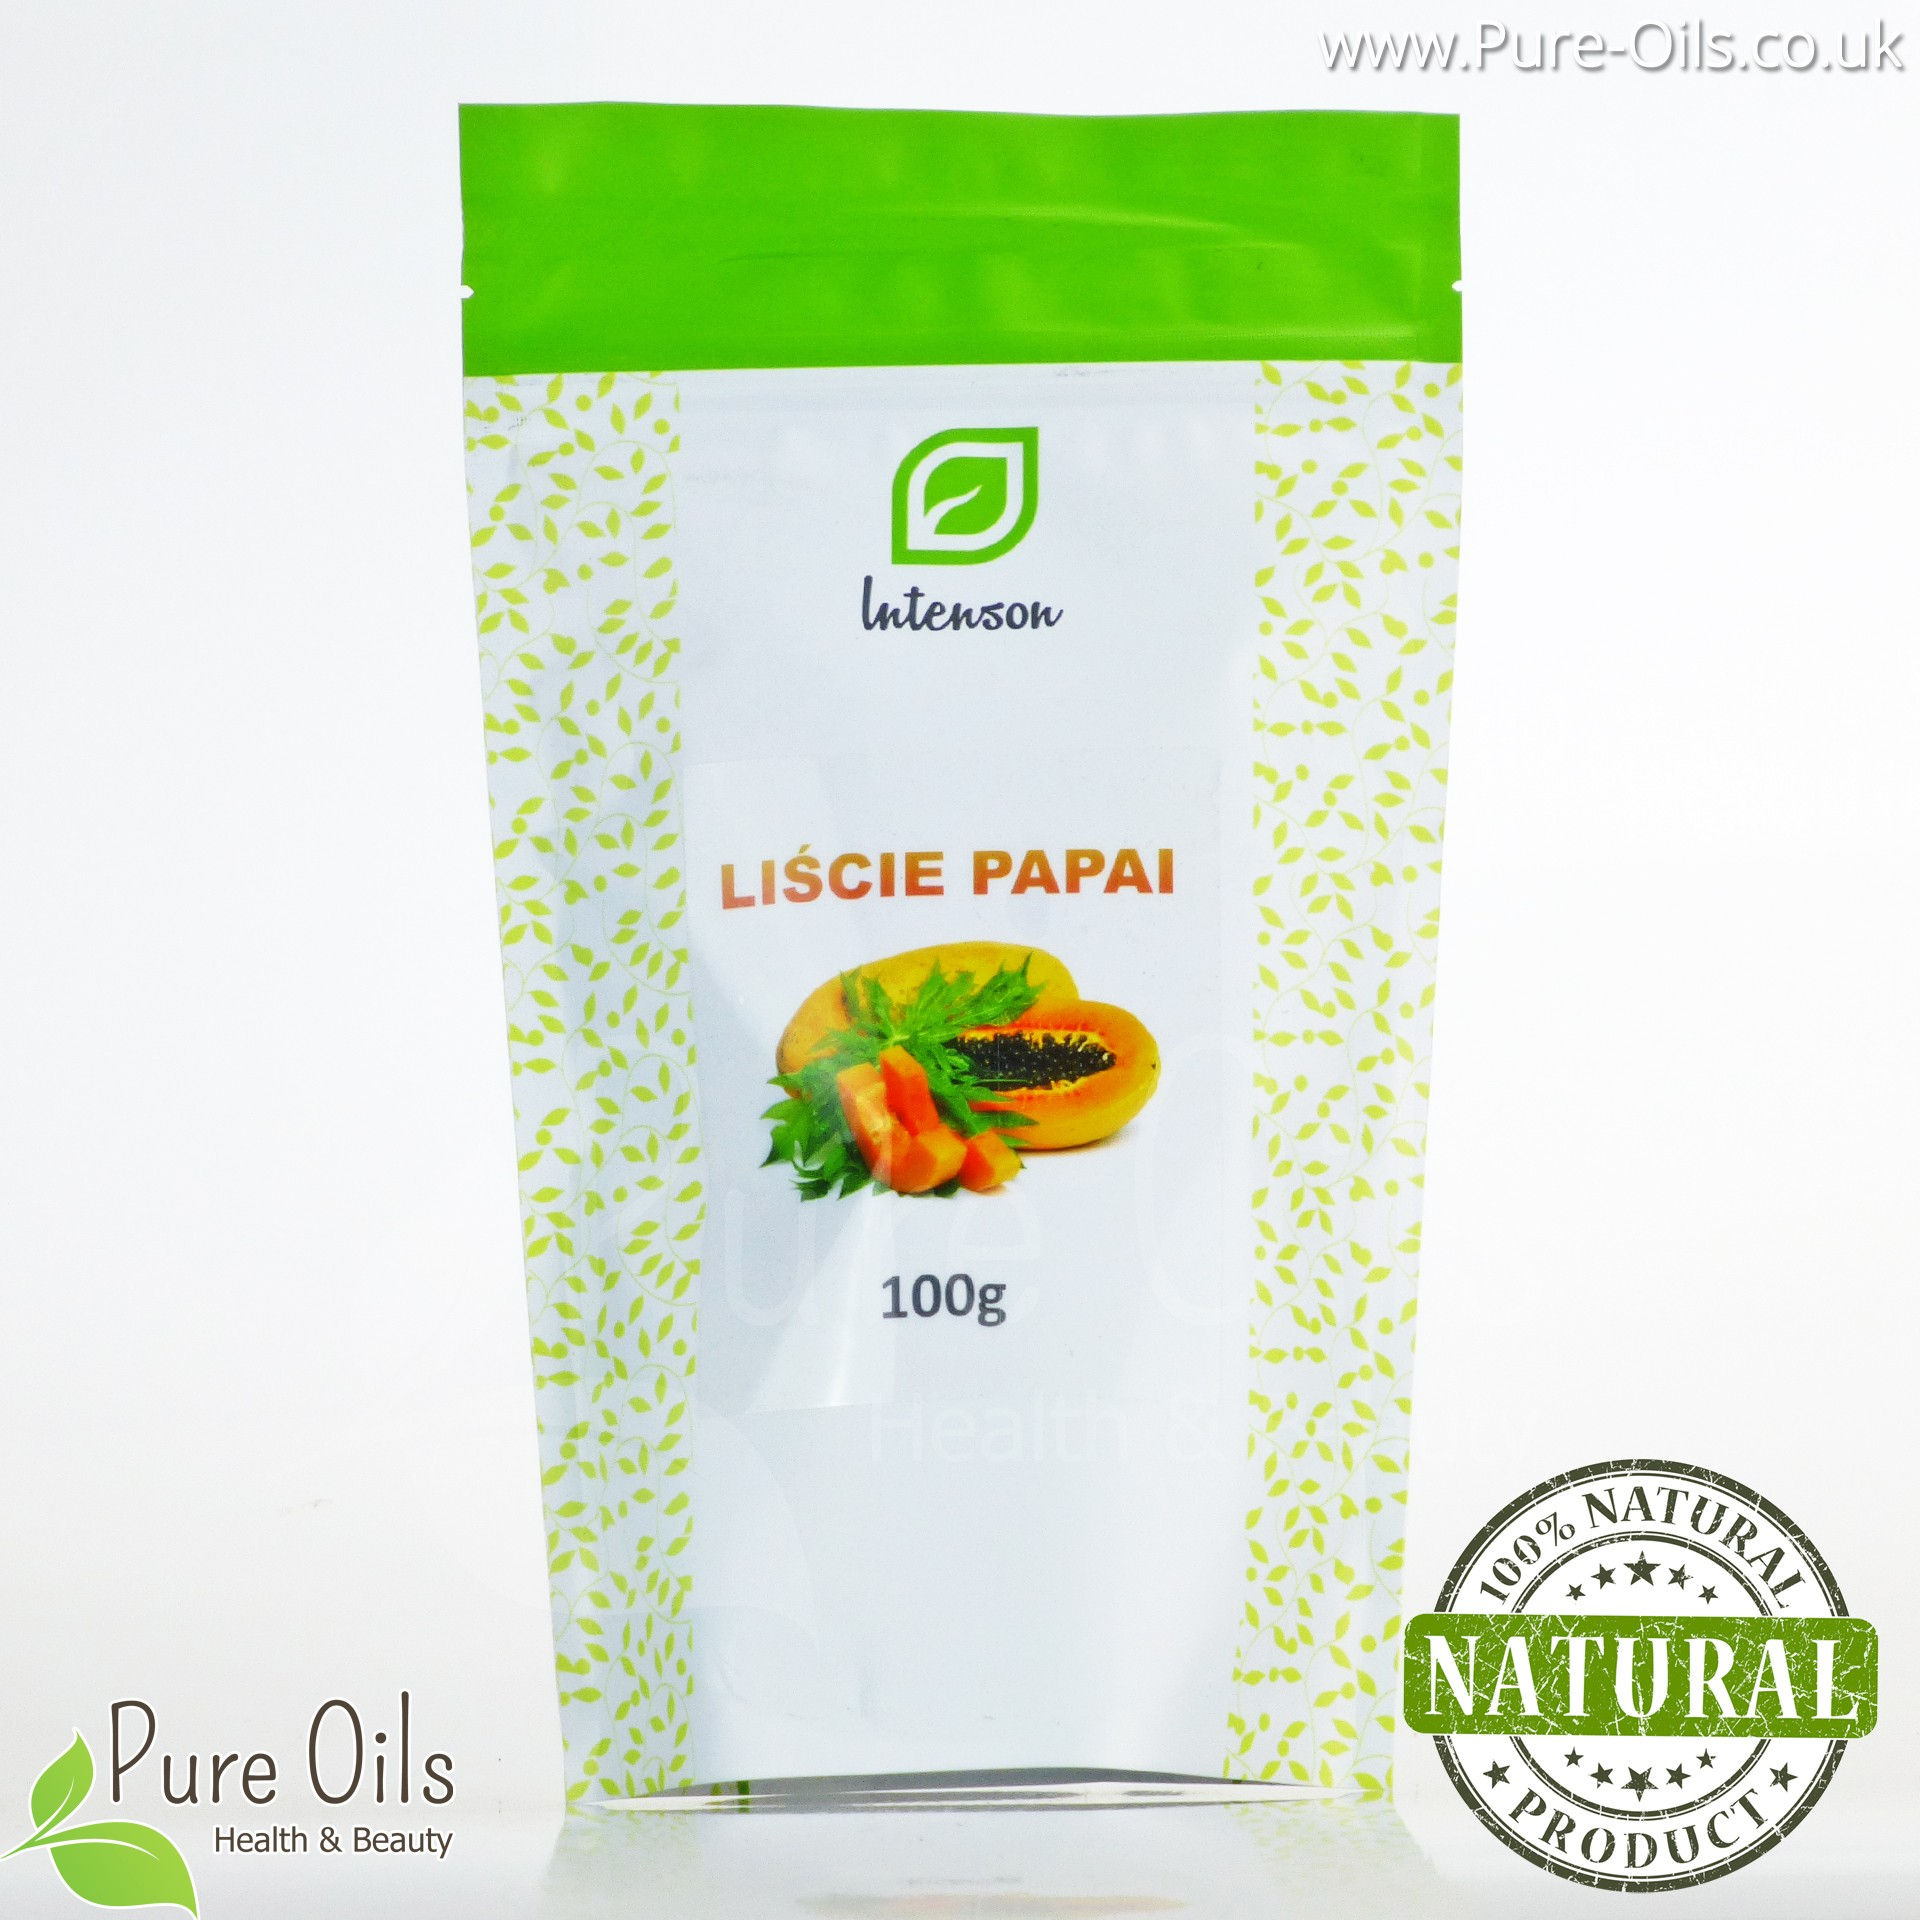 Papaya - dried leaf, Intenson - 100 g